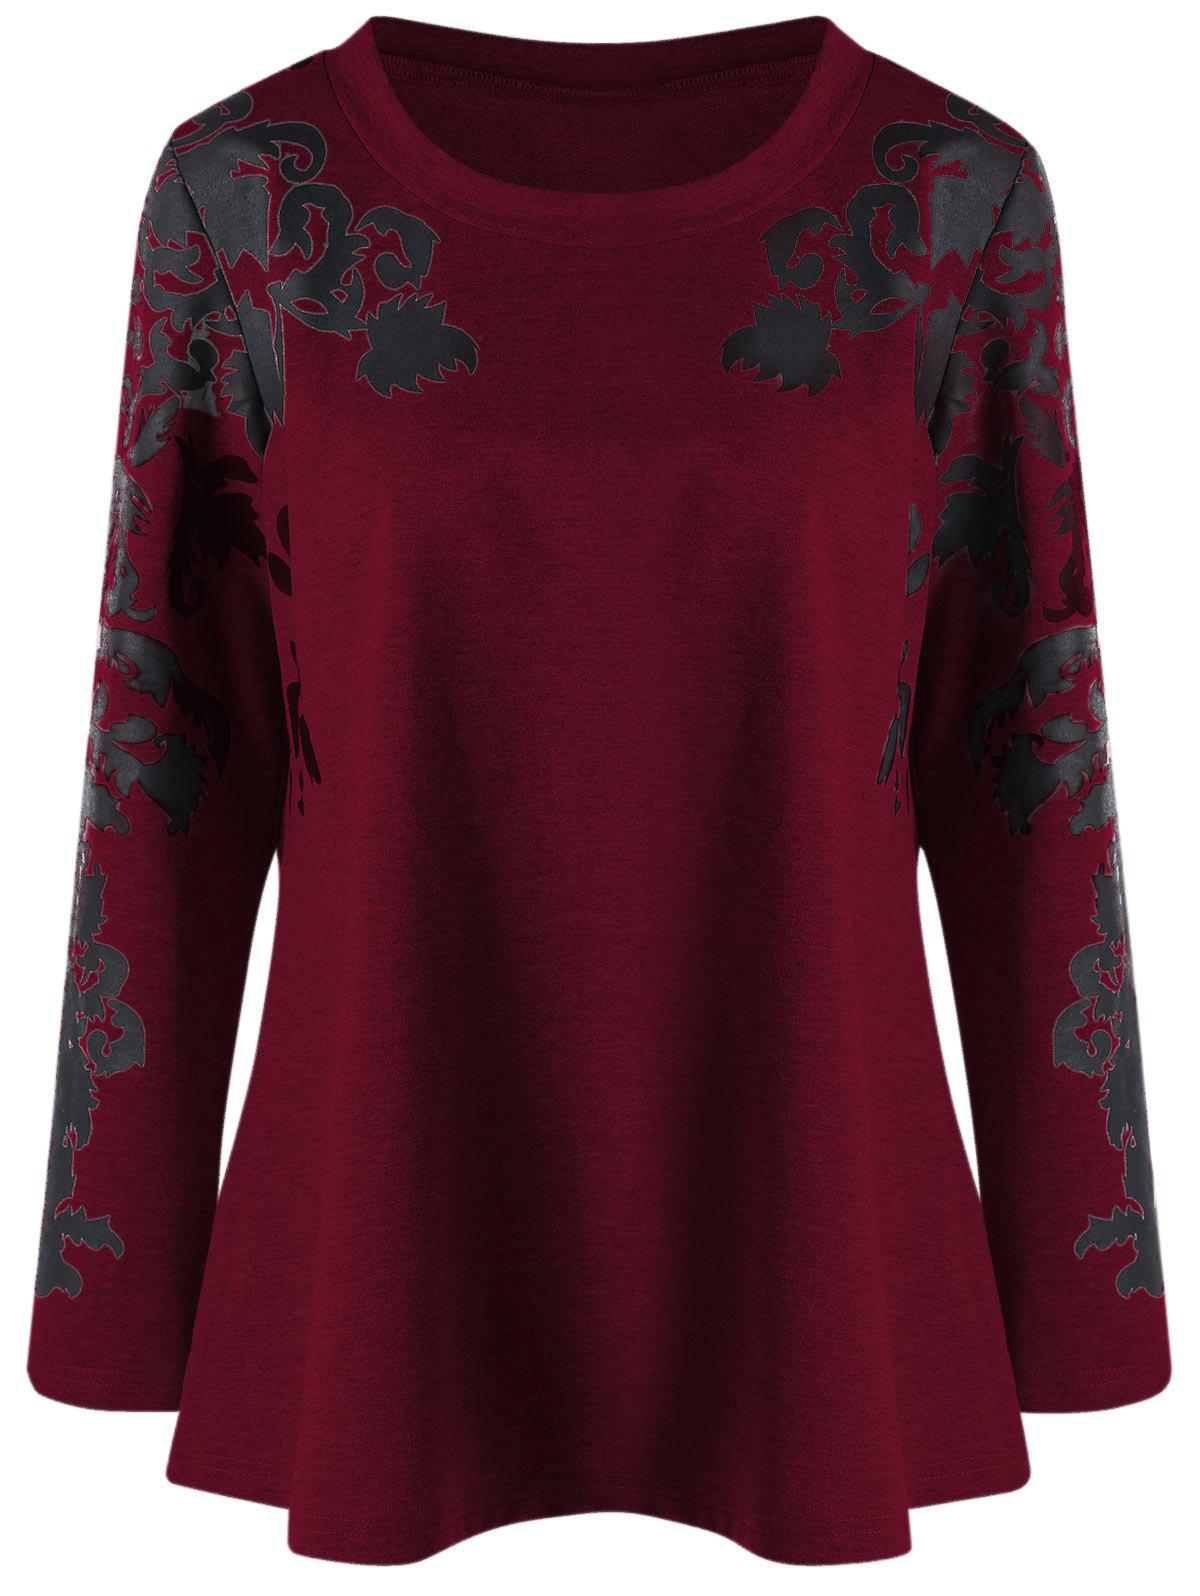 Raglan Sleeve Plus Size Print TopWOMEN<br><br>Size: 2XL; Color: DEEP RED; Material: Cotton Blends,Polyester,Spandex; Shirt Length: Regular; Sleeve Length: Full; Collar: Round Neck; Style: Casual; Season: Fall,Spring; Pattern Type: Print; Weight: 0.3910kg; Package Contents: 1 x Top;